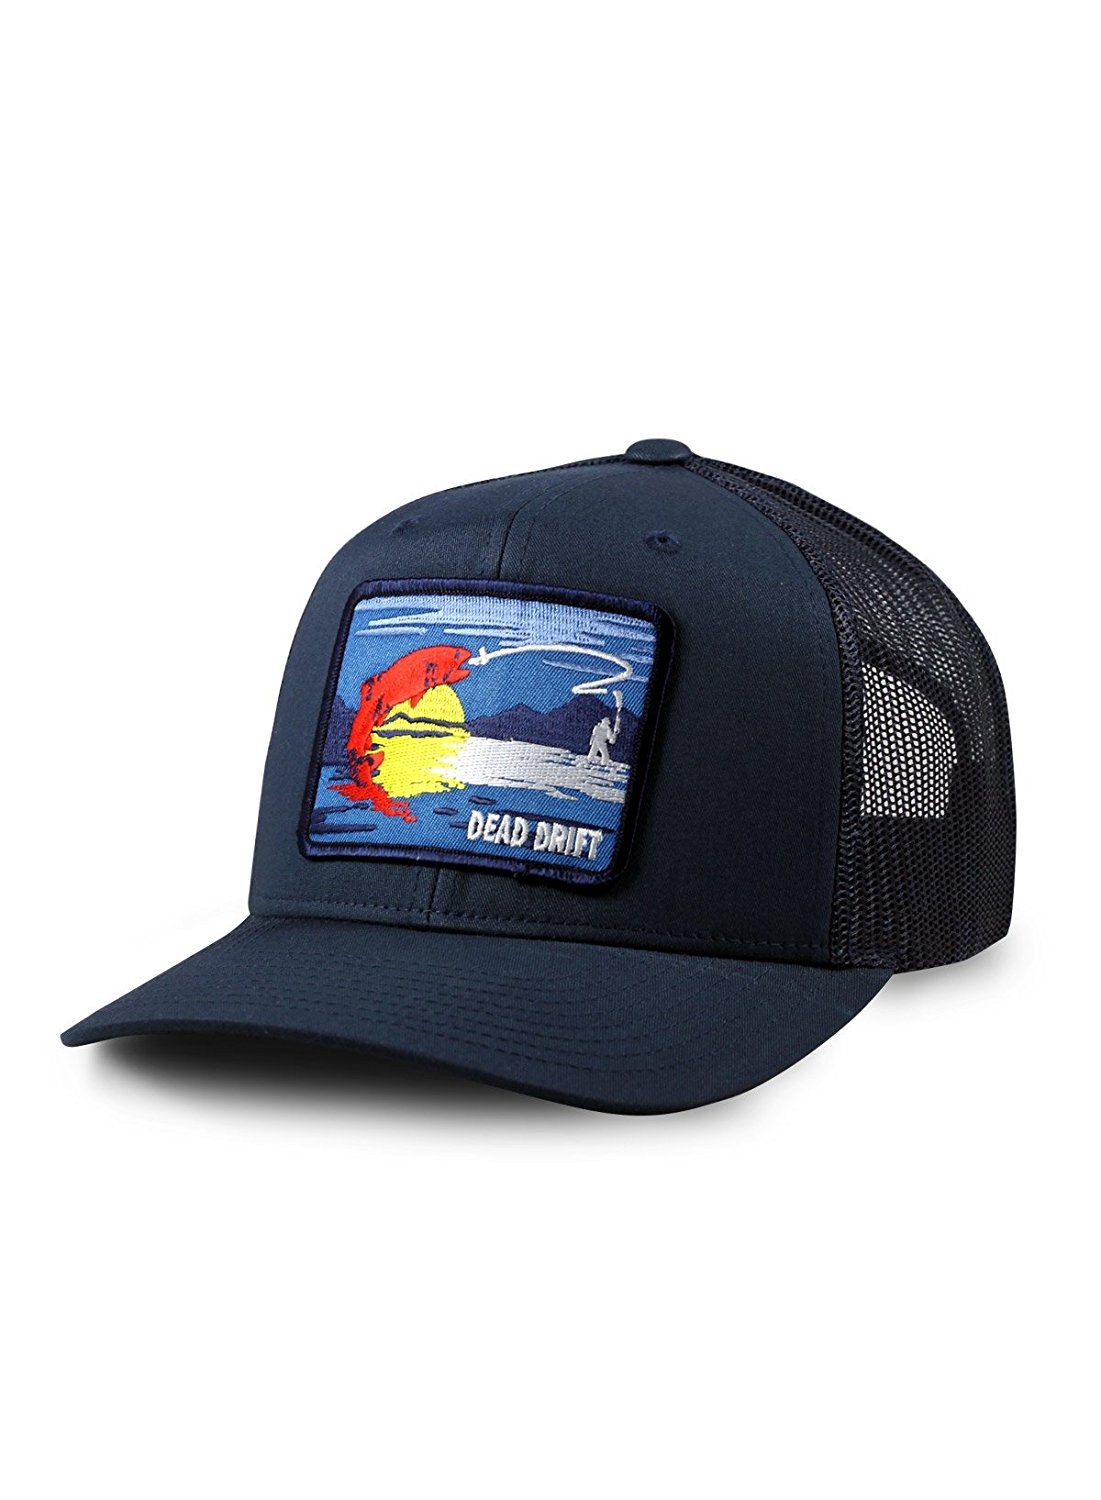 5e3061ab Get Quotations · Dead Drift Fly Fishing Hat Colorado Trucker Snapback Navy  by Fly